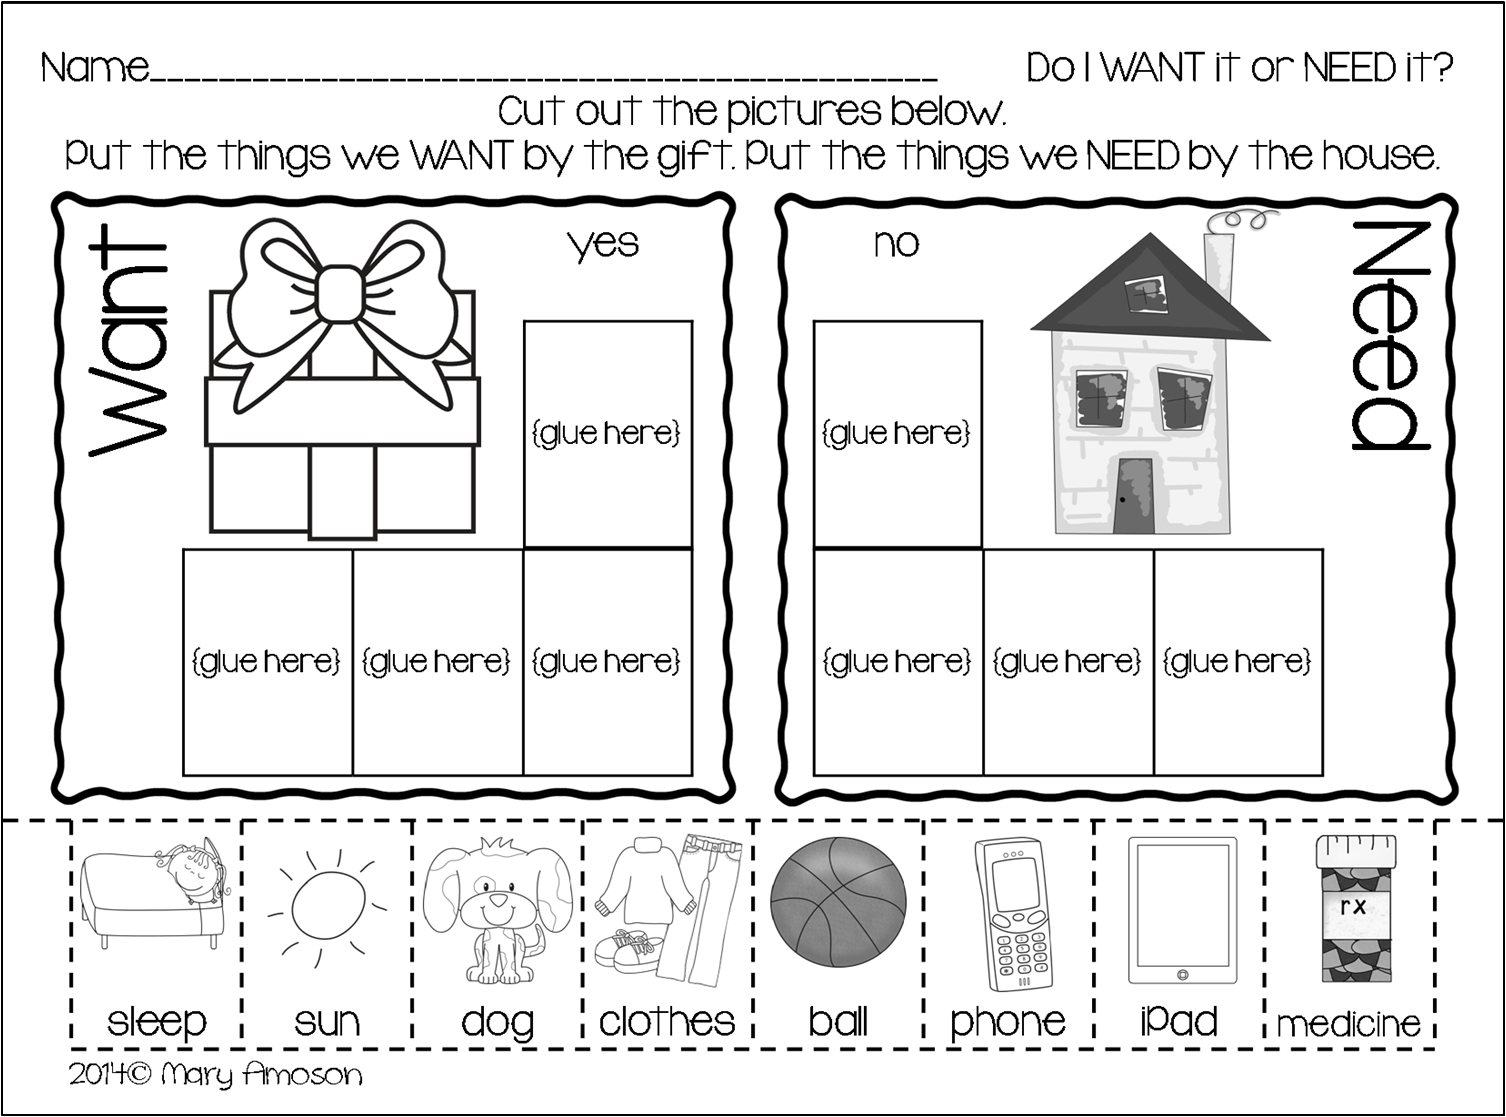 17 Best Images Of Want Vs Need Worksheet Free Printable For Adults